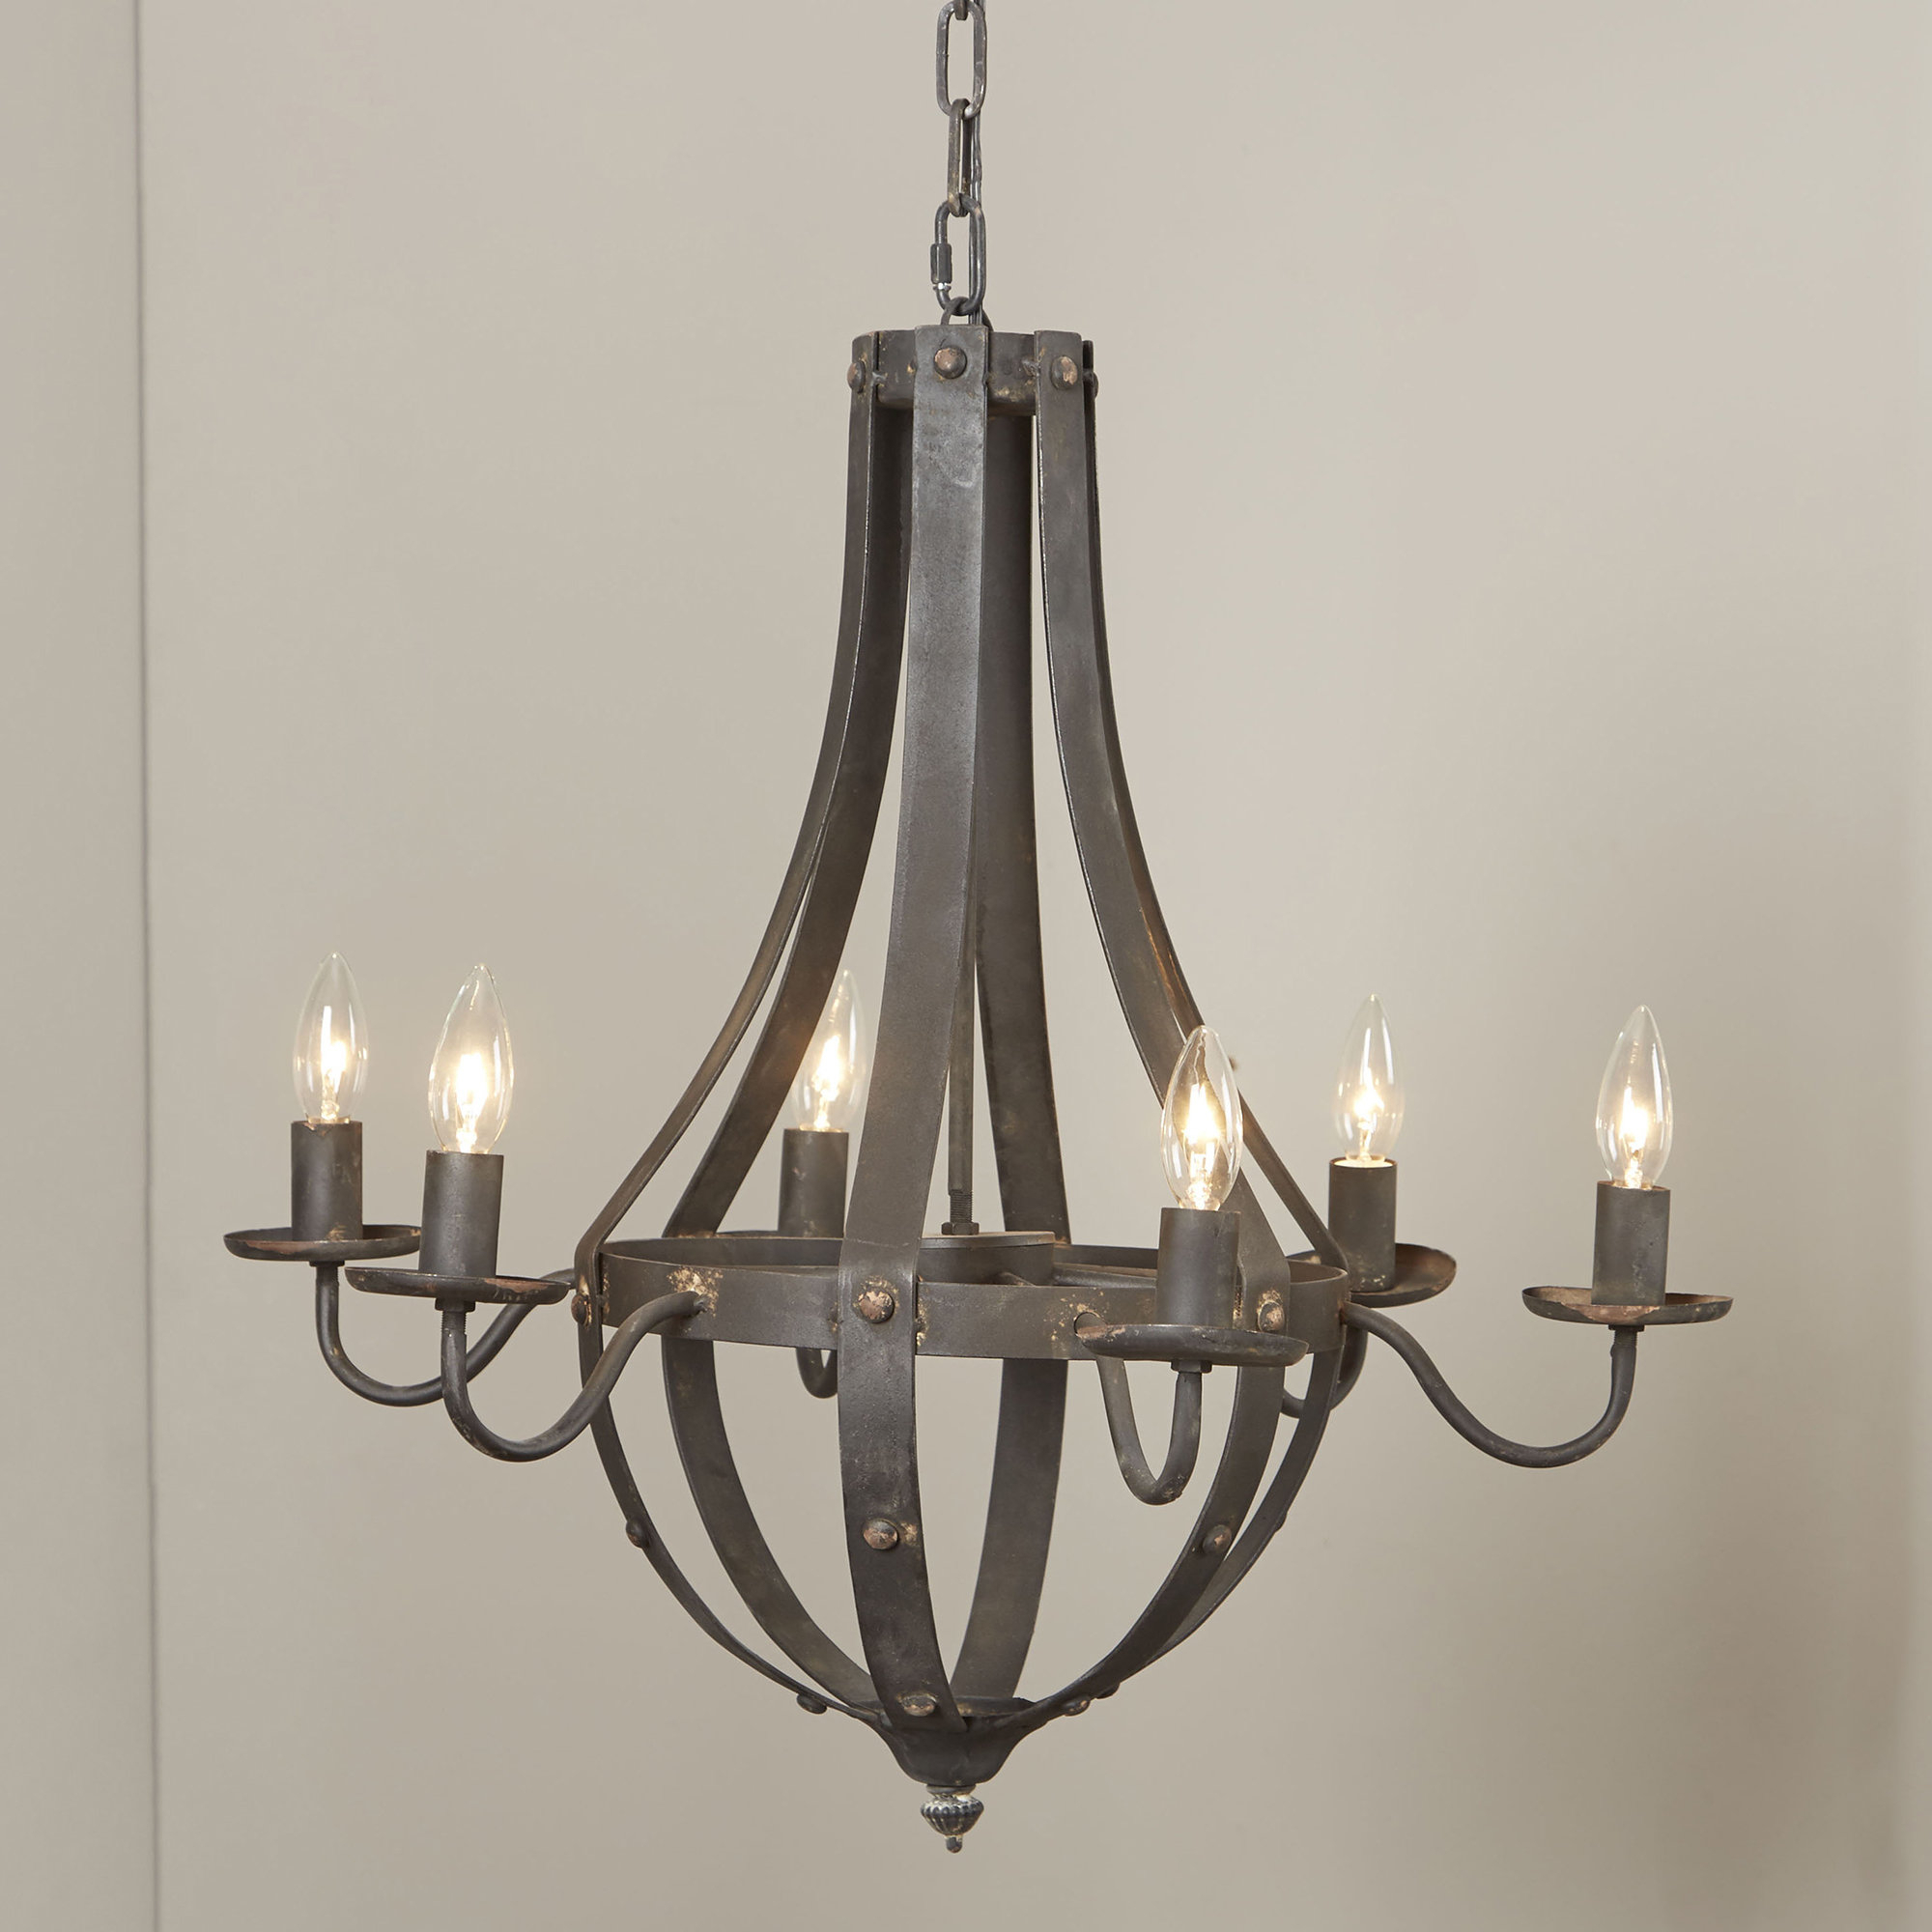 Kenna 5-Light Empire Chandeliers within 2019 Foulds 6-Light Empire Chandelier